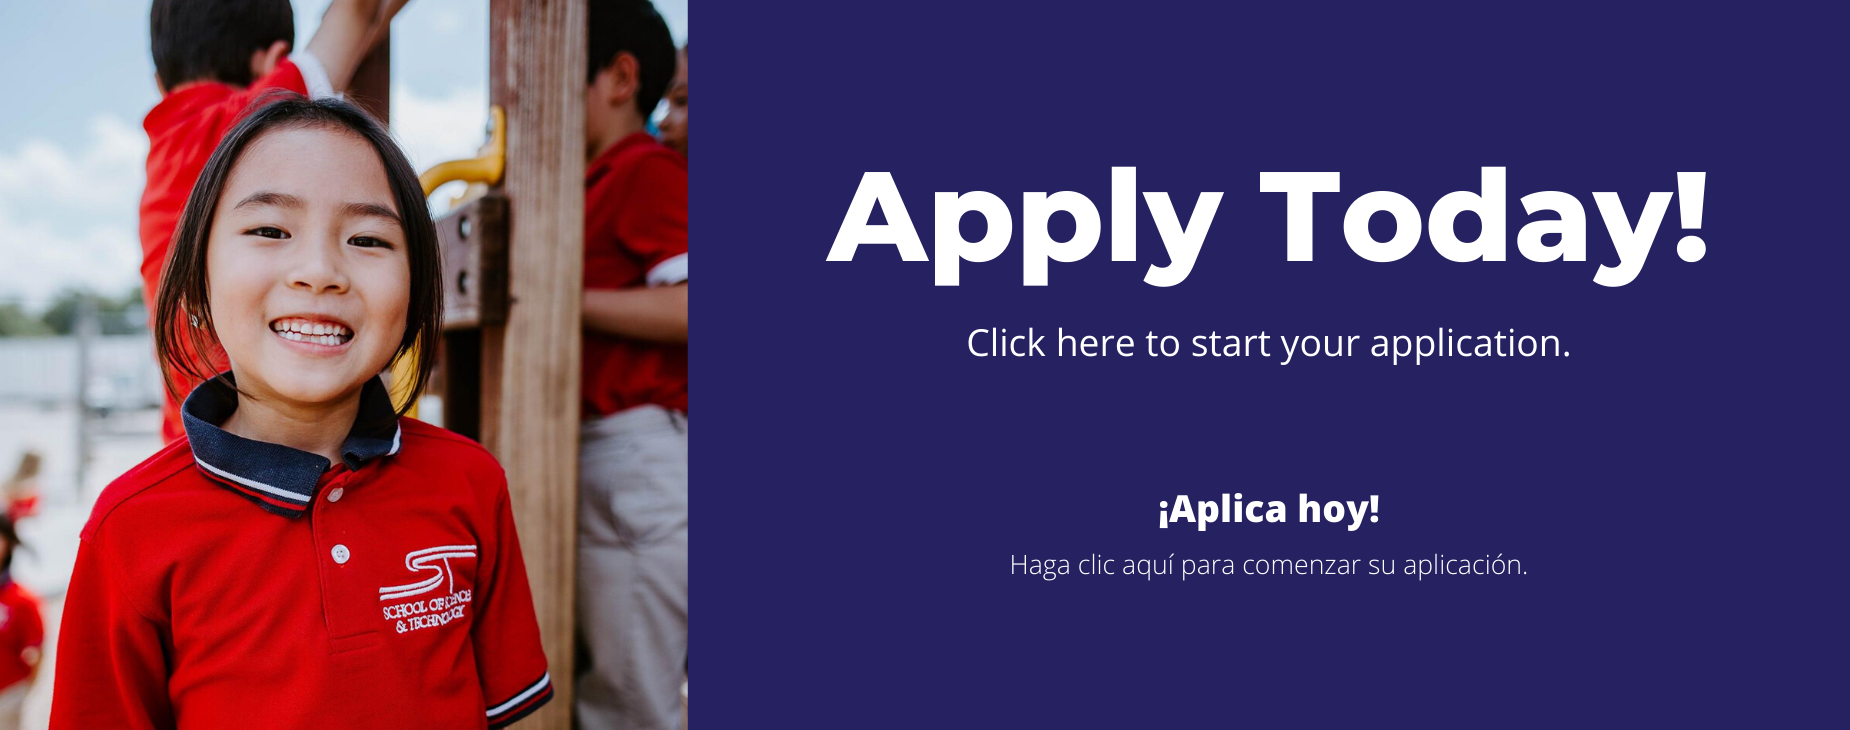 Apply Today! Click here to start your application